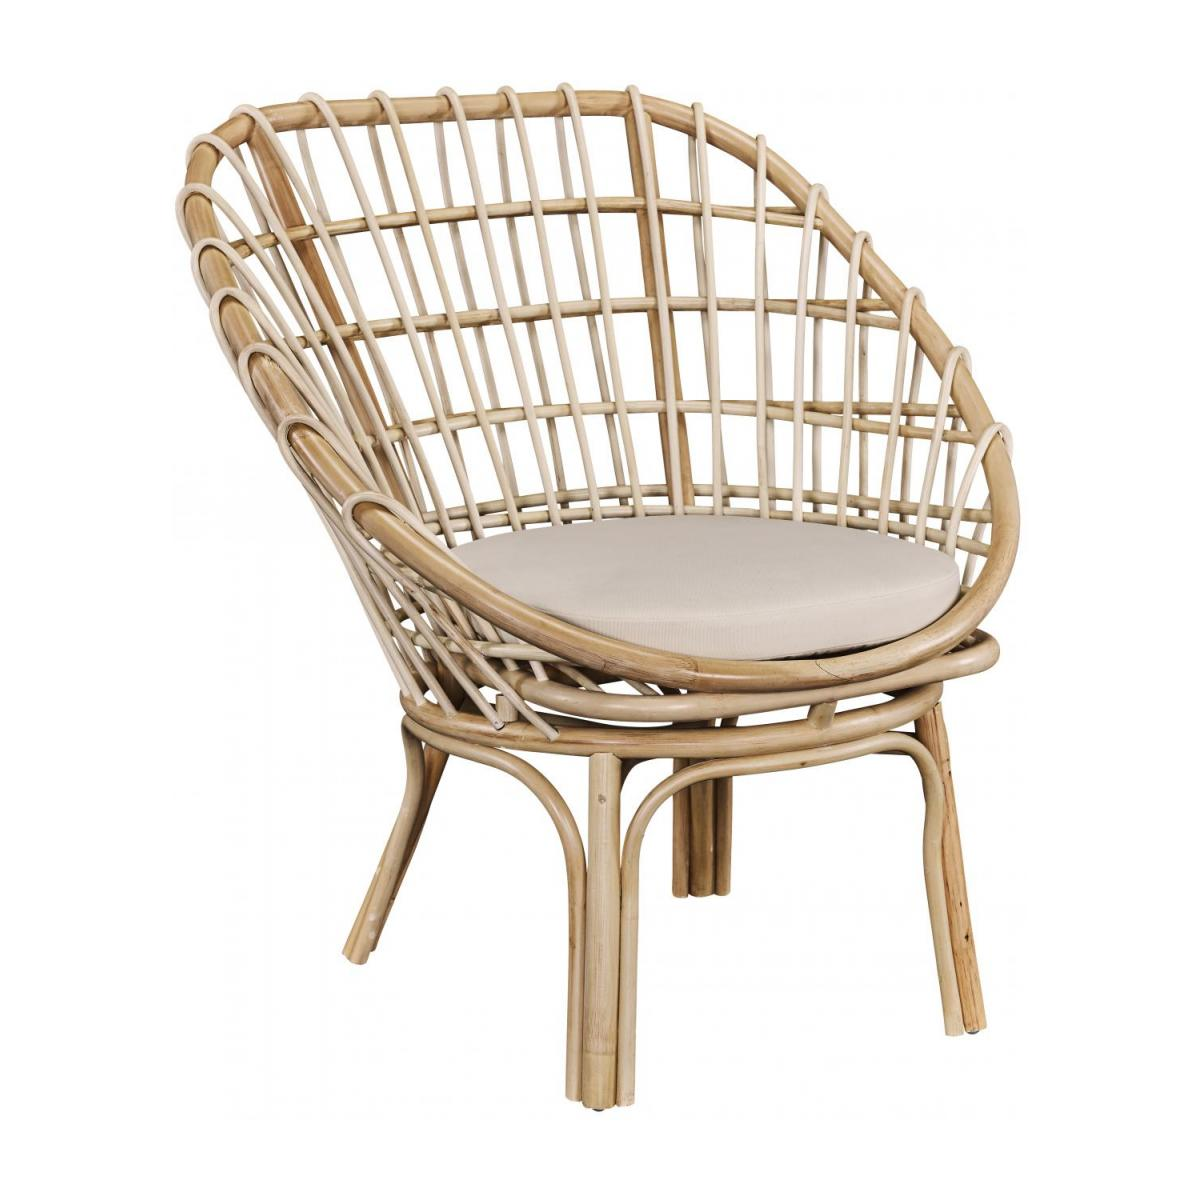 Sessel aus Rattan - Naturfarben - Design by Adrien Carvès n°1